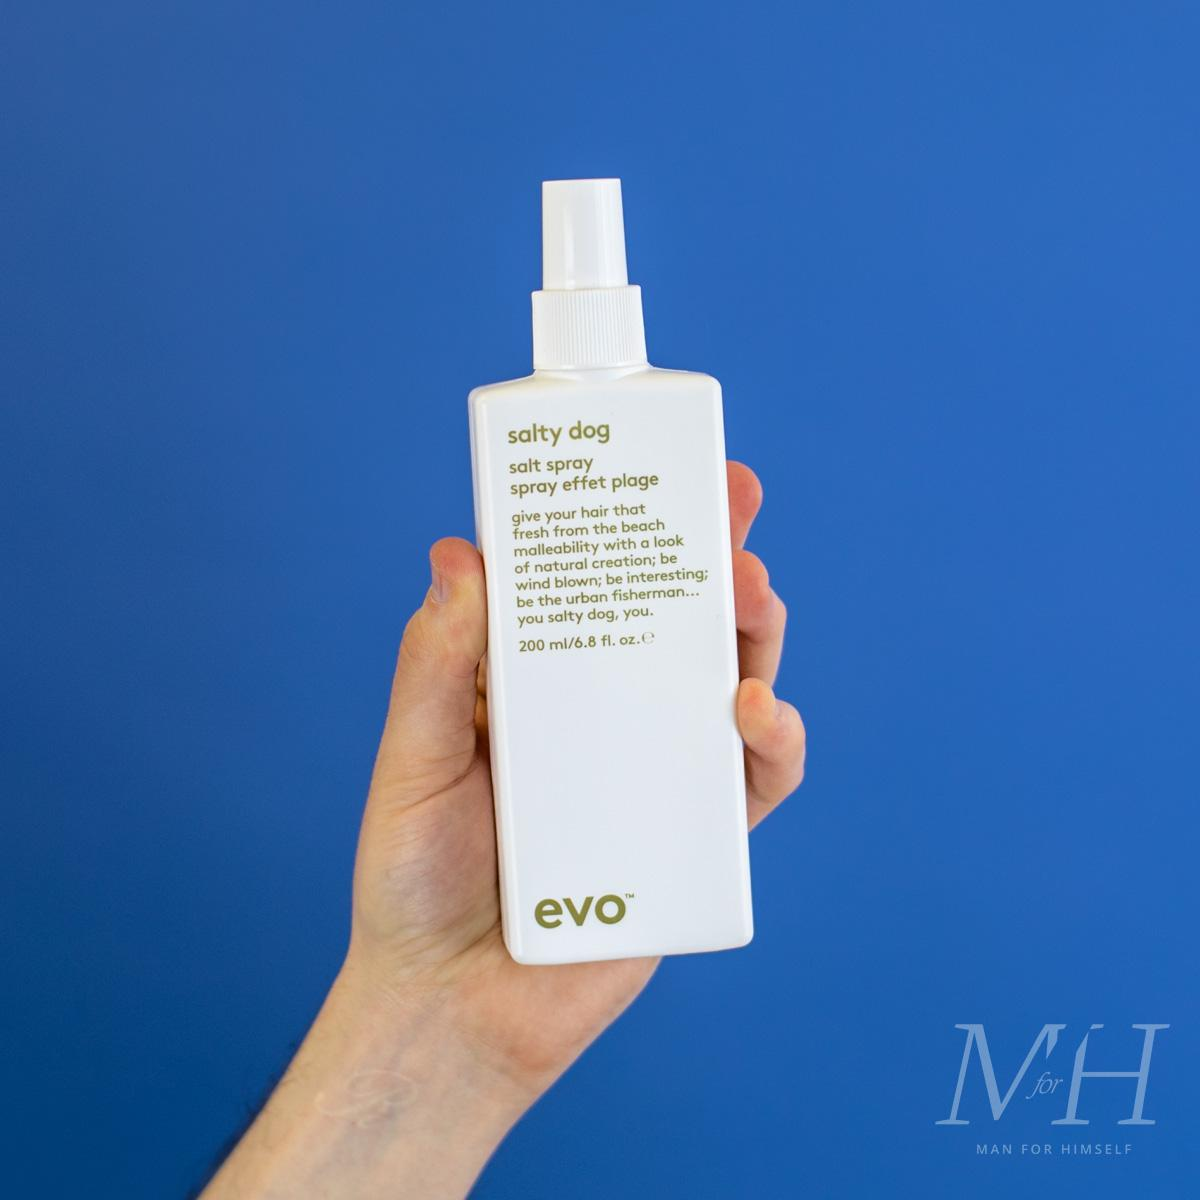 salty-dog-evo-sea-salt-spray-product-review-man-for-himself